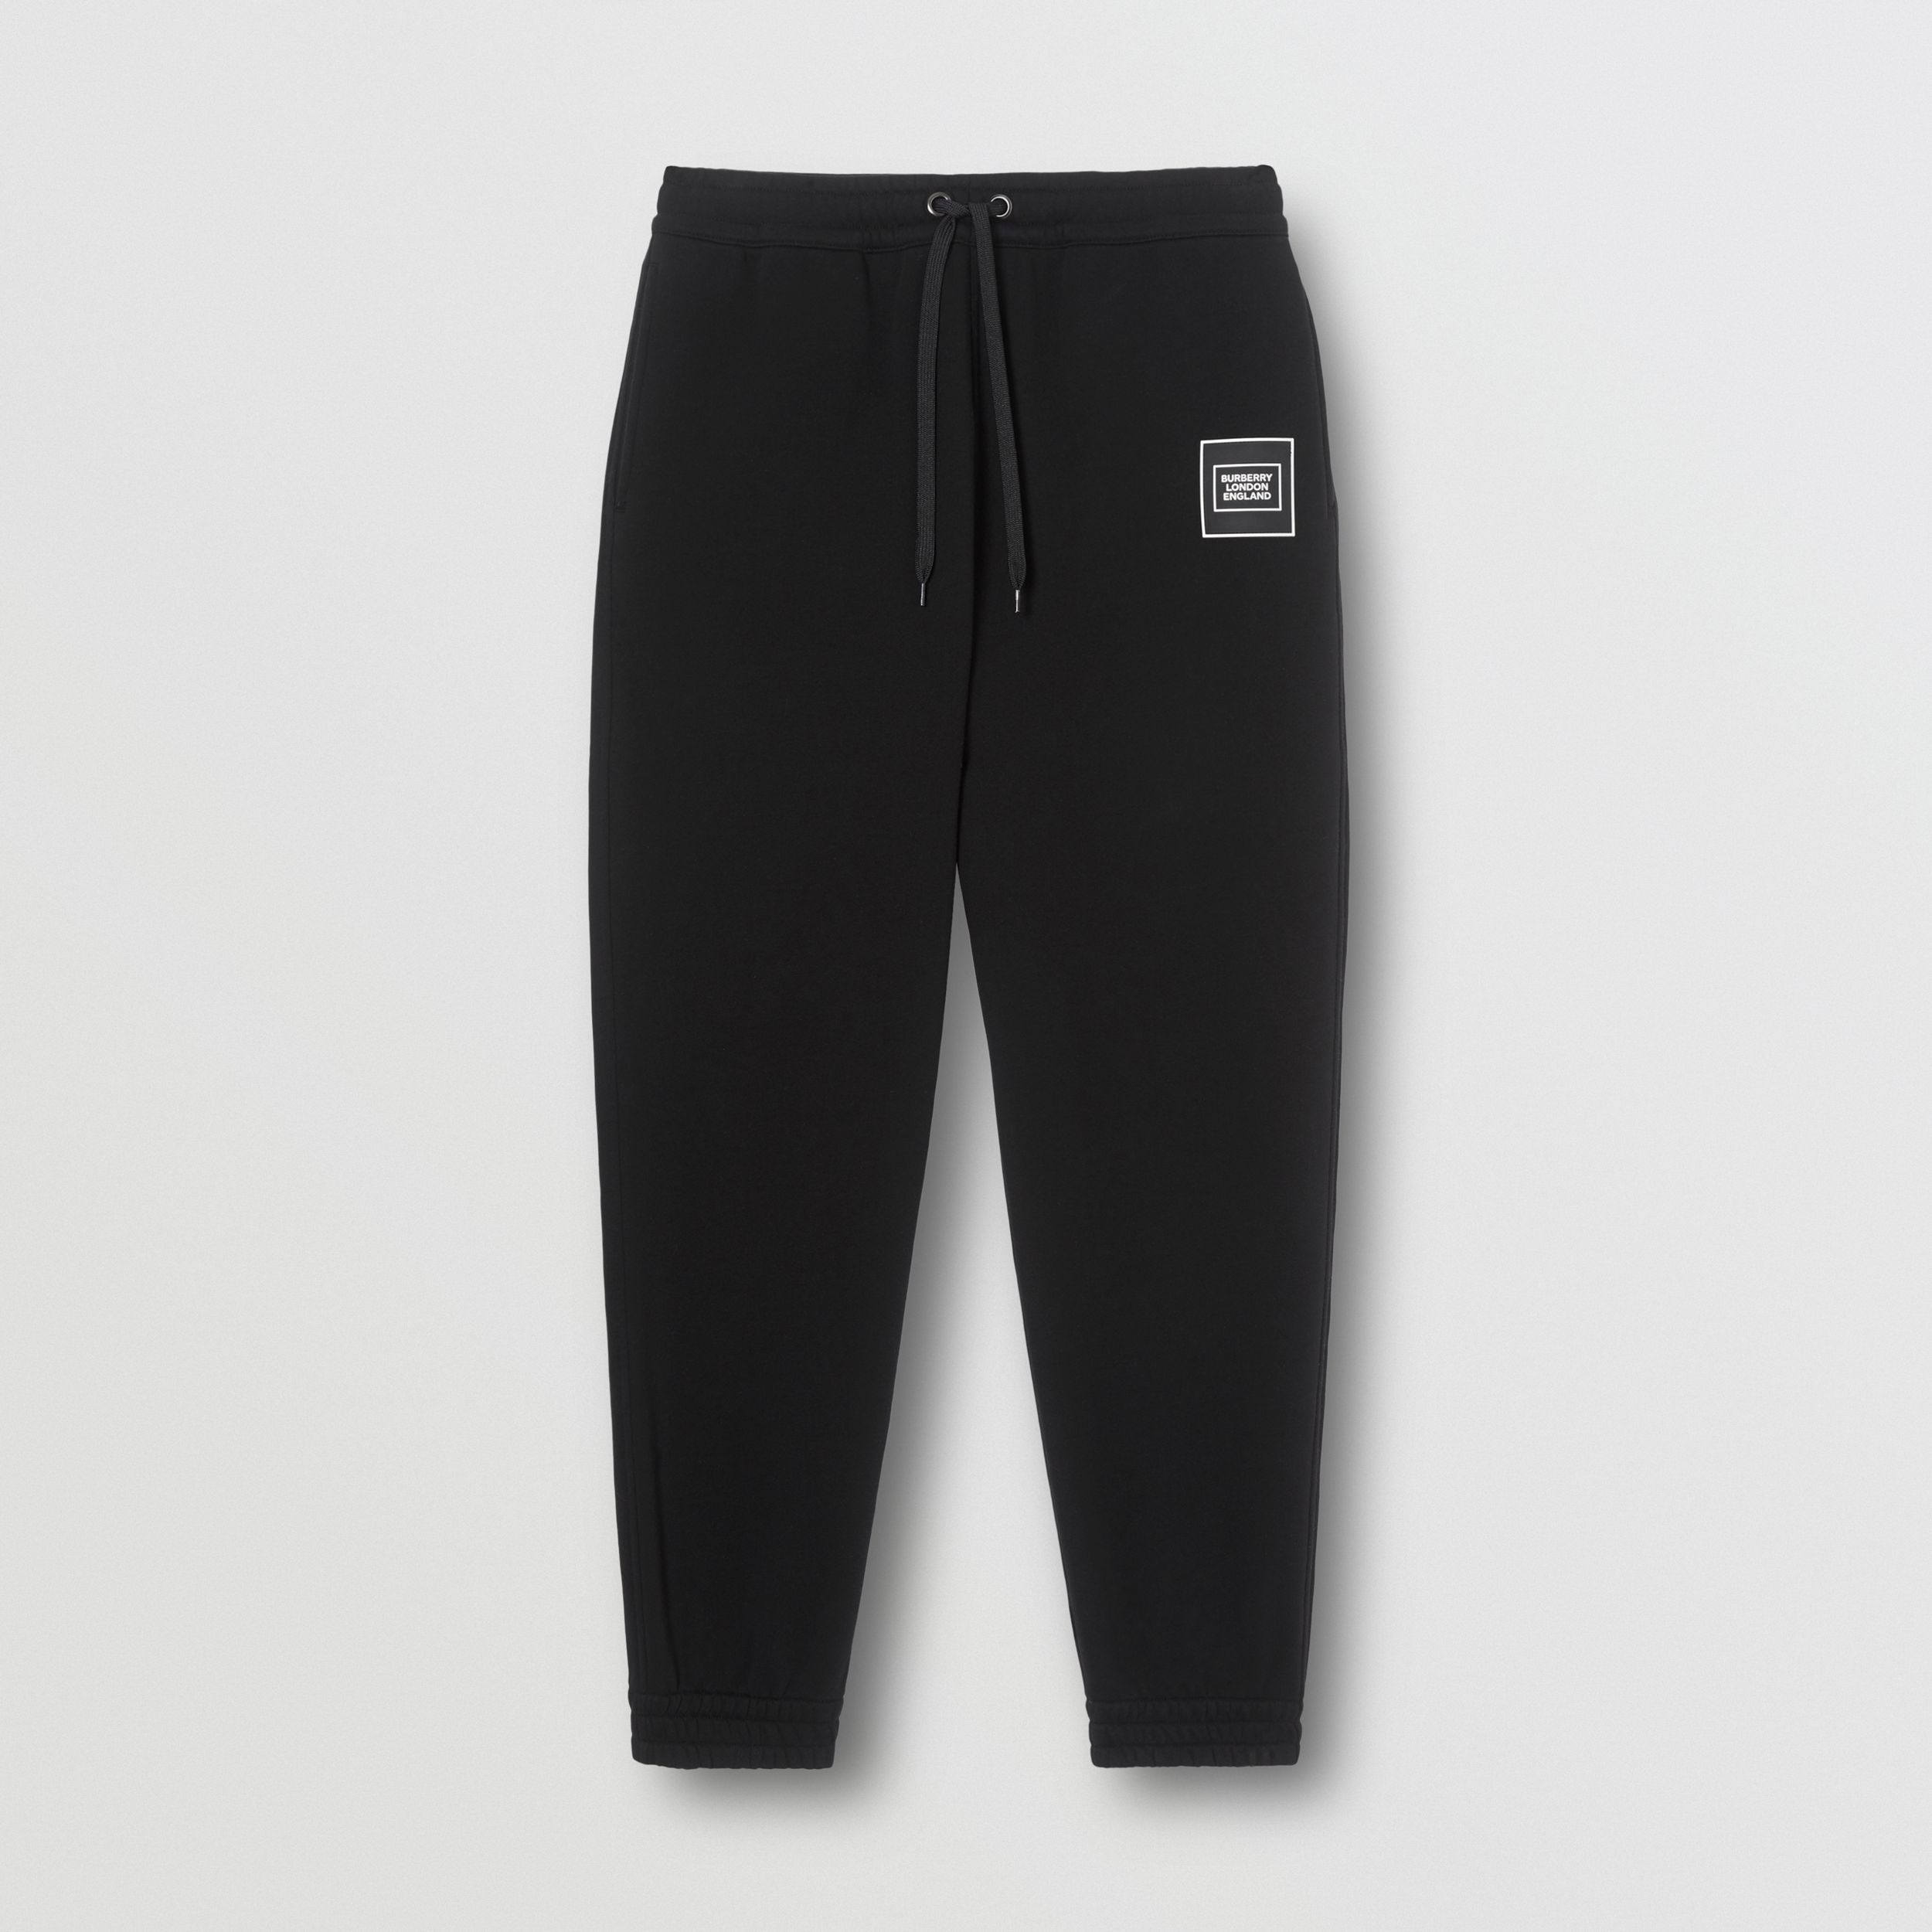 Logo Appliqué Cotton Jogging Pants in Black - Men | Burberry - 4